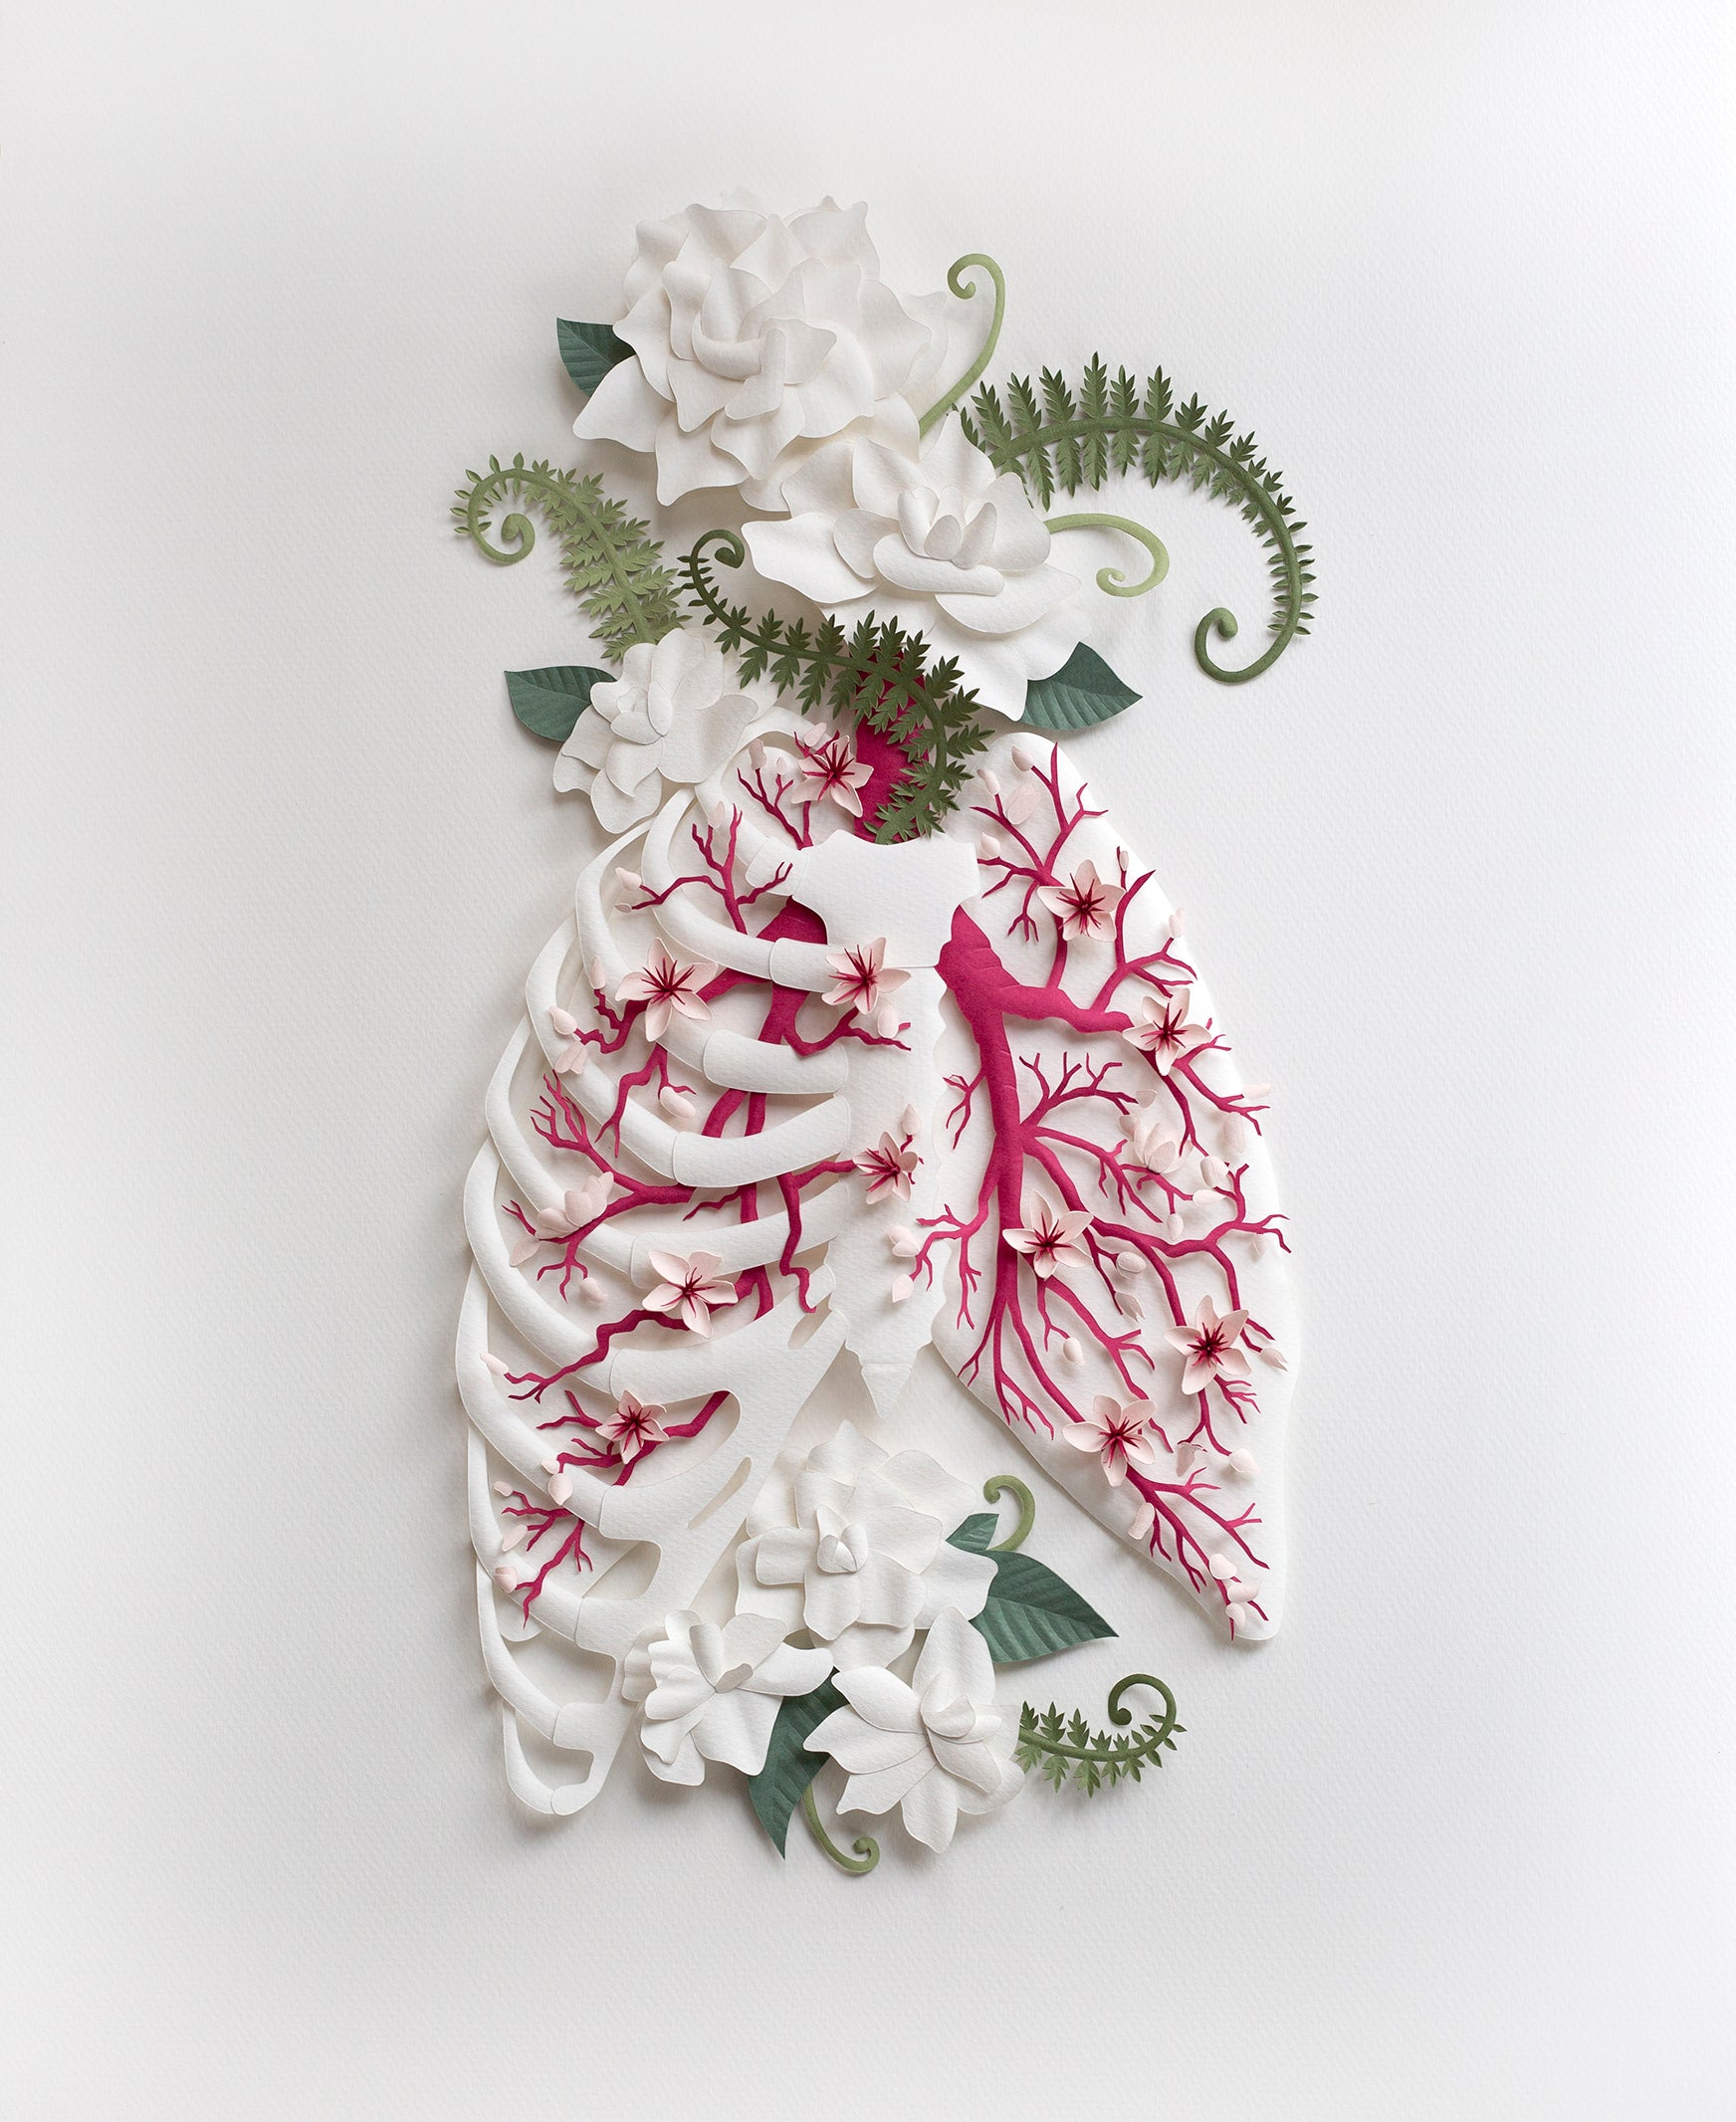 Deep Breathing | original paper sculpture